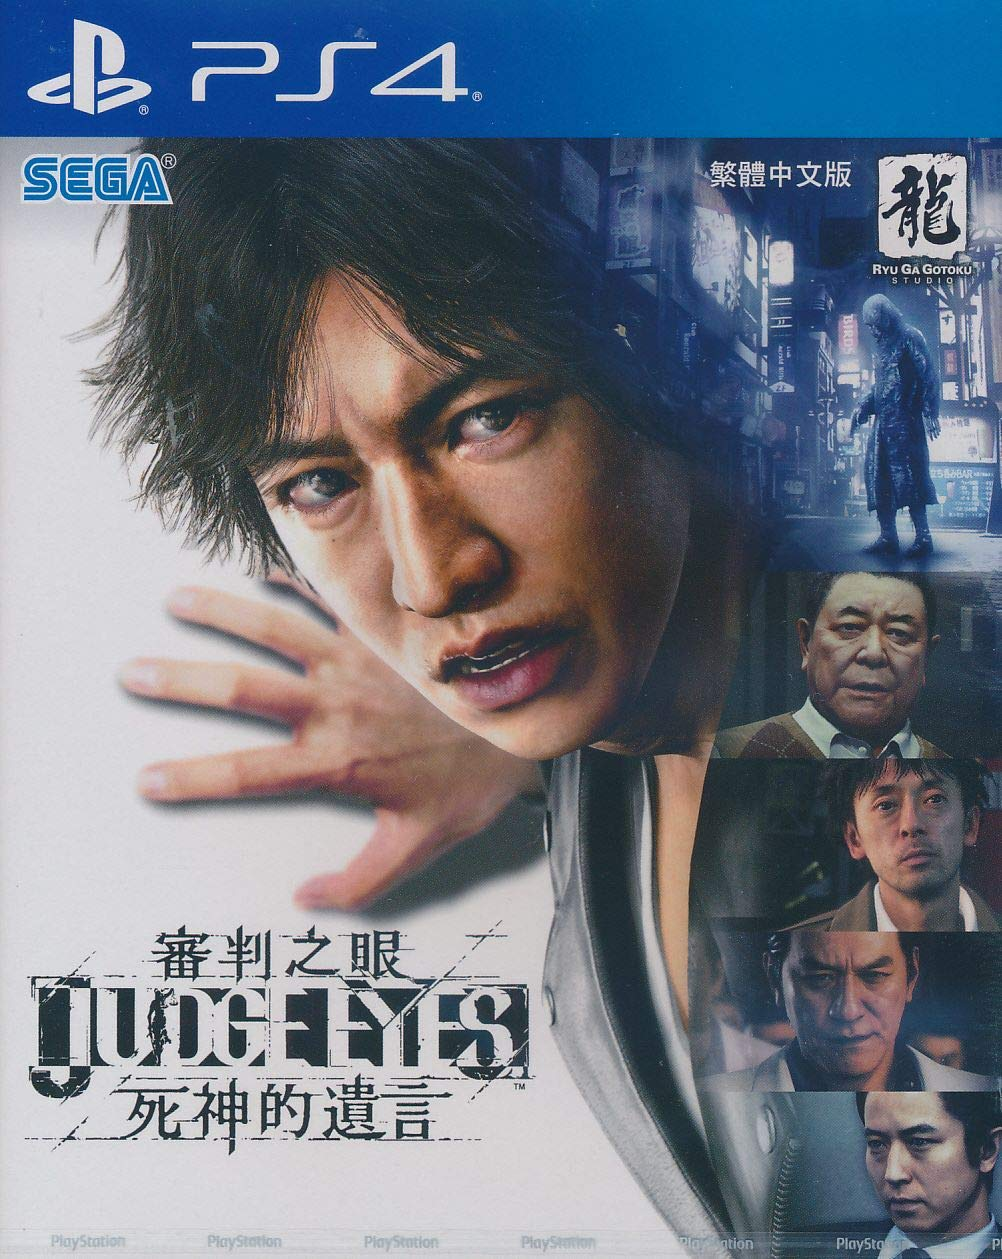 JUDGE EYES: SHINIGAMI NO YUIGON VOICE JAPANESE (CHINESE SUBS) for PlayStation 4 [PS4]